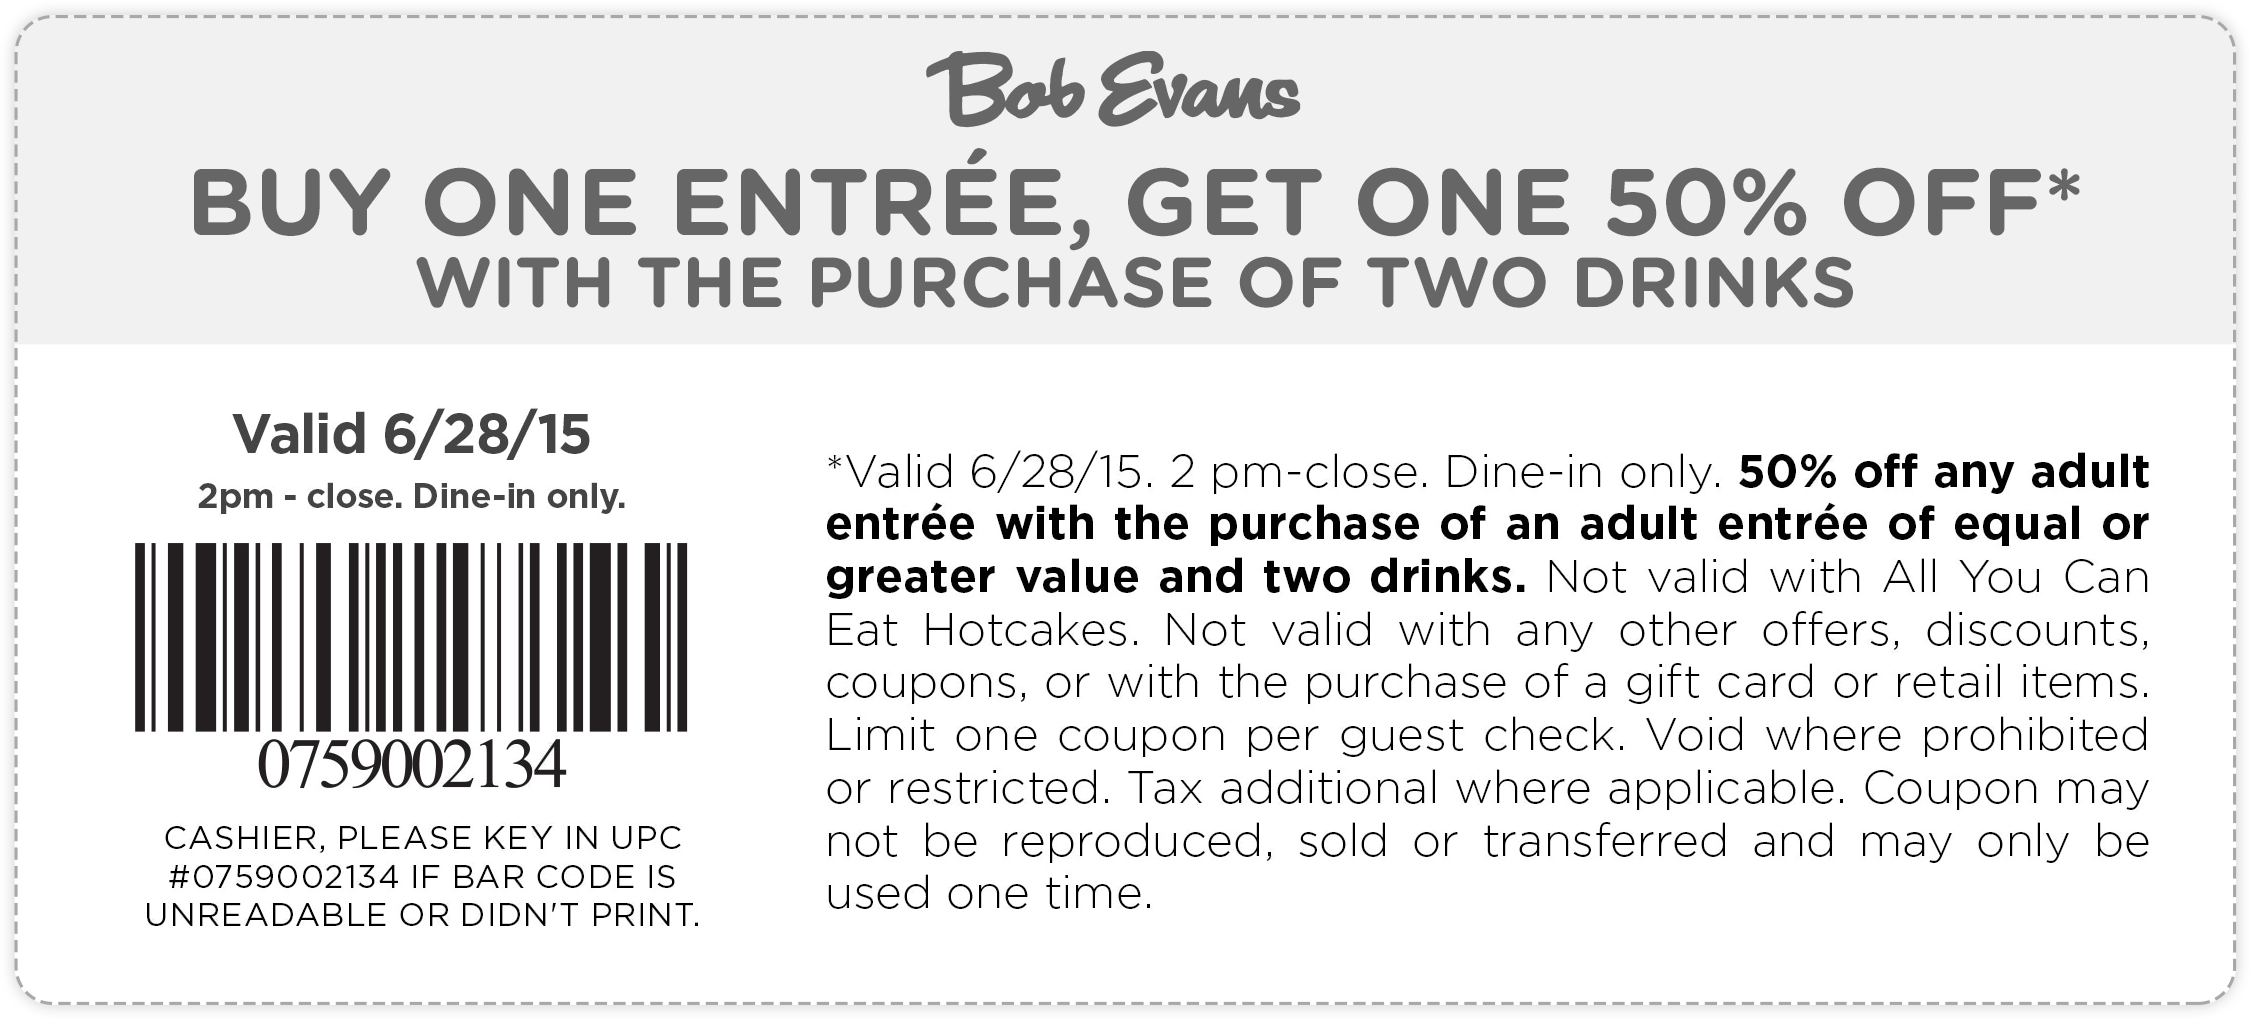 Bob Evans Coupon February 2017 Second entree 50% off today at Bob Evans